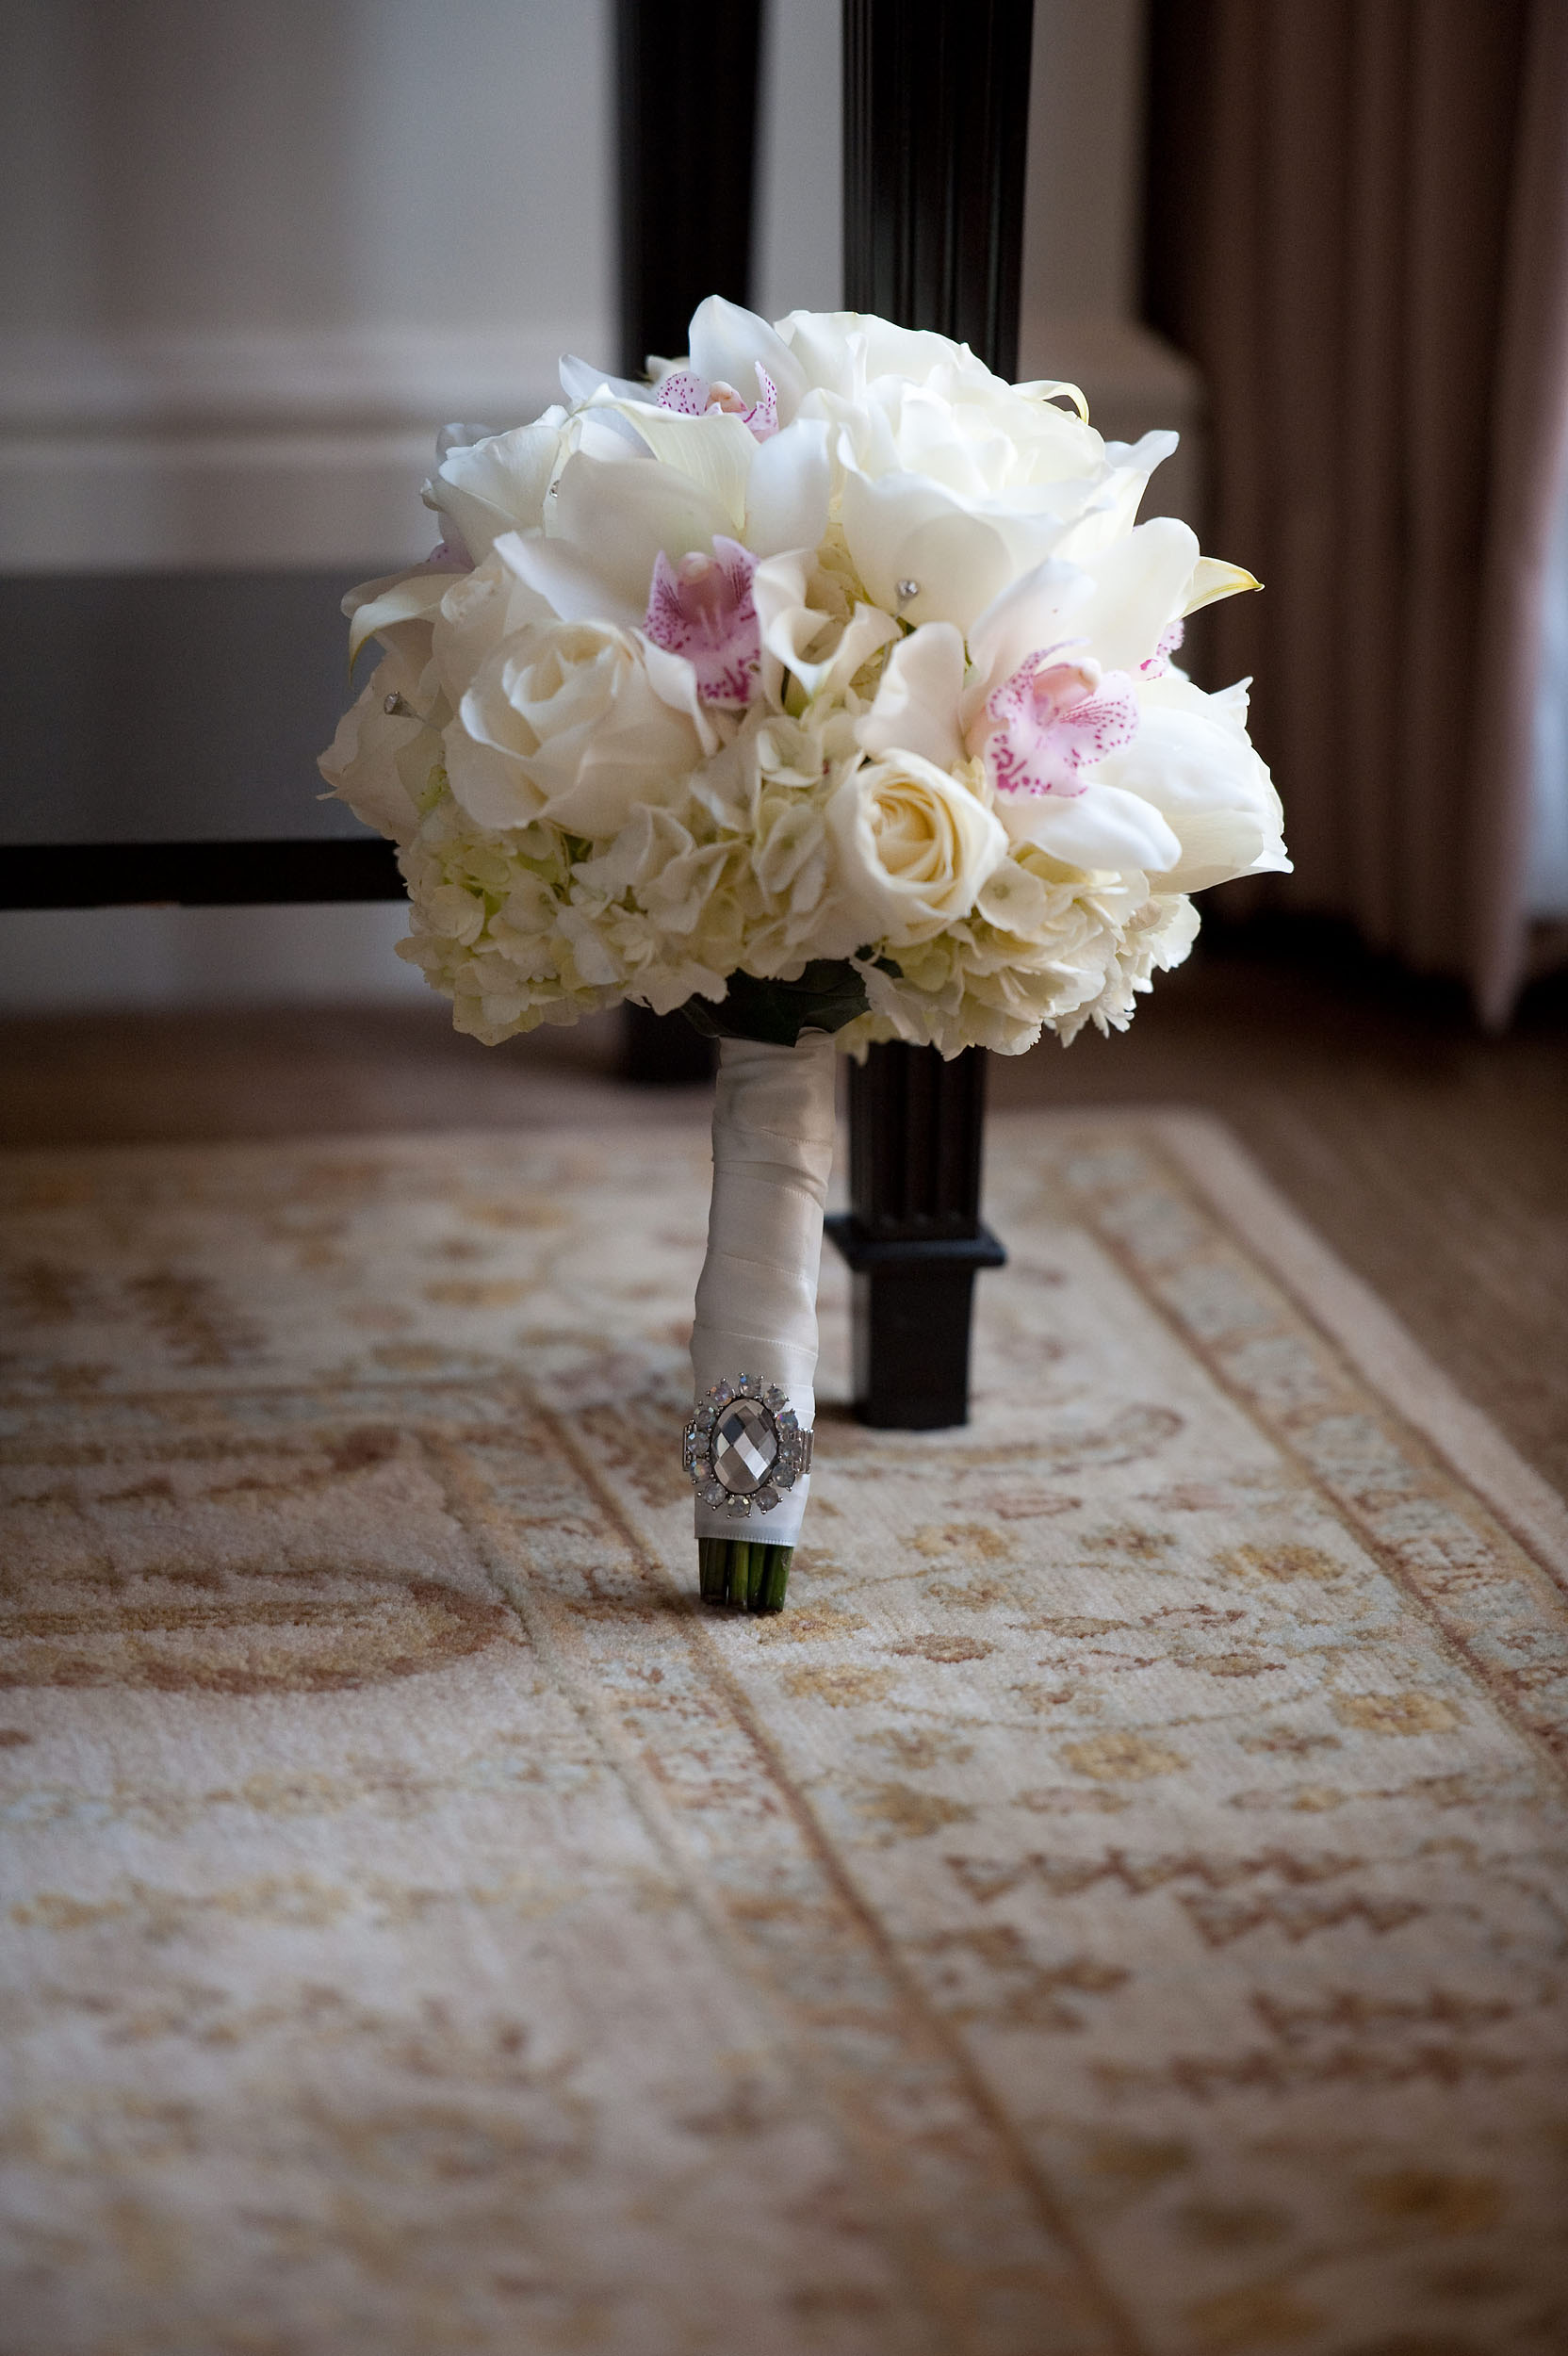 White and pink bride's flower bouquet.